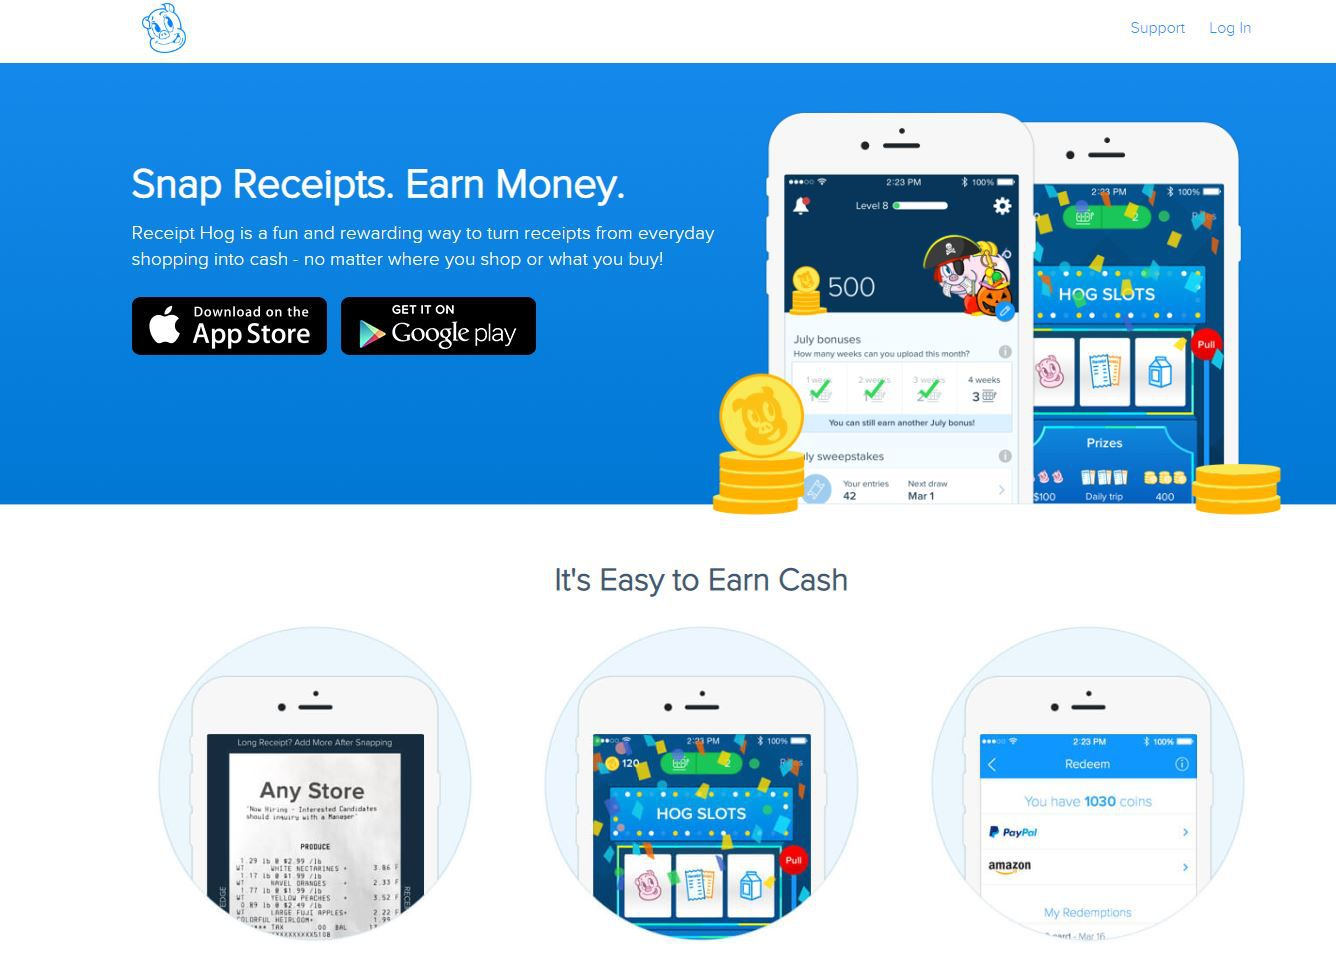 How to Get Free Money on PayPal